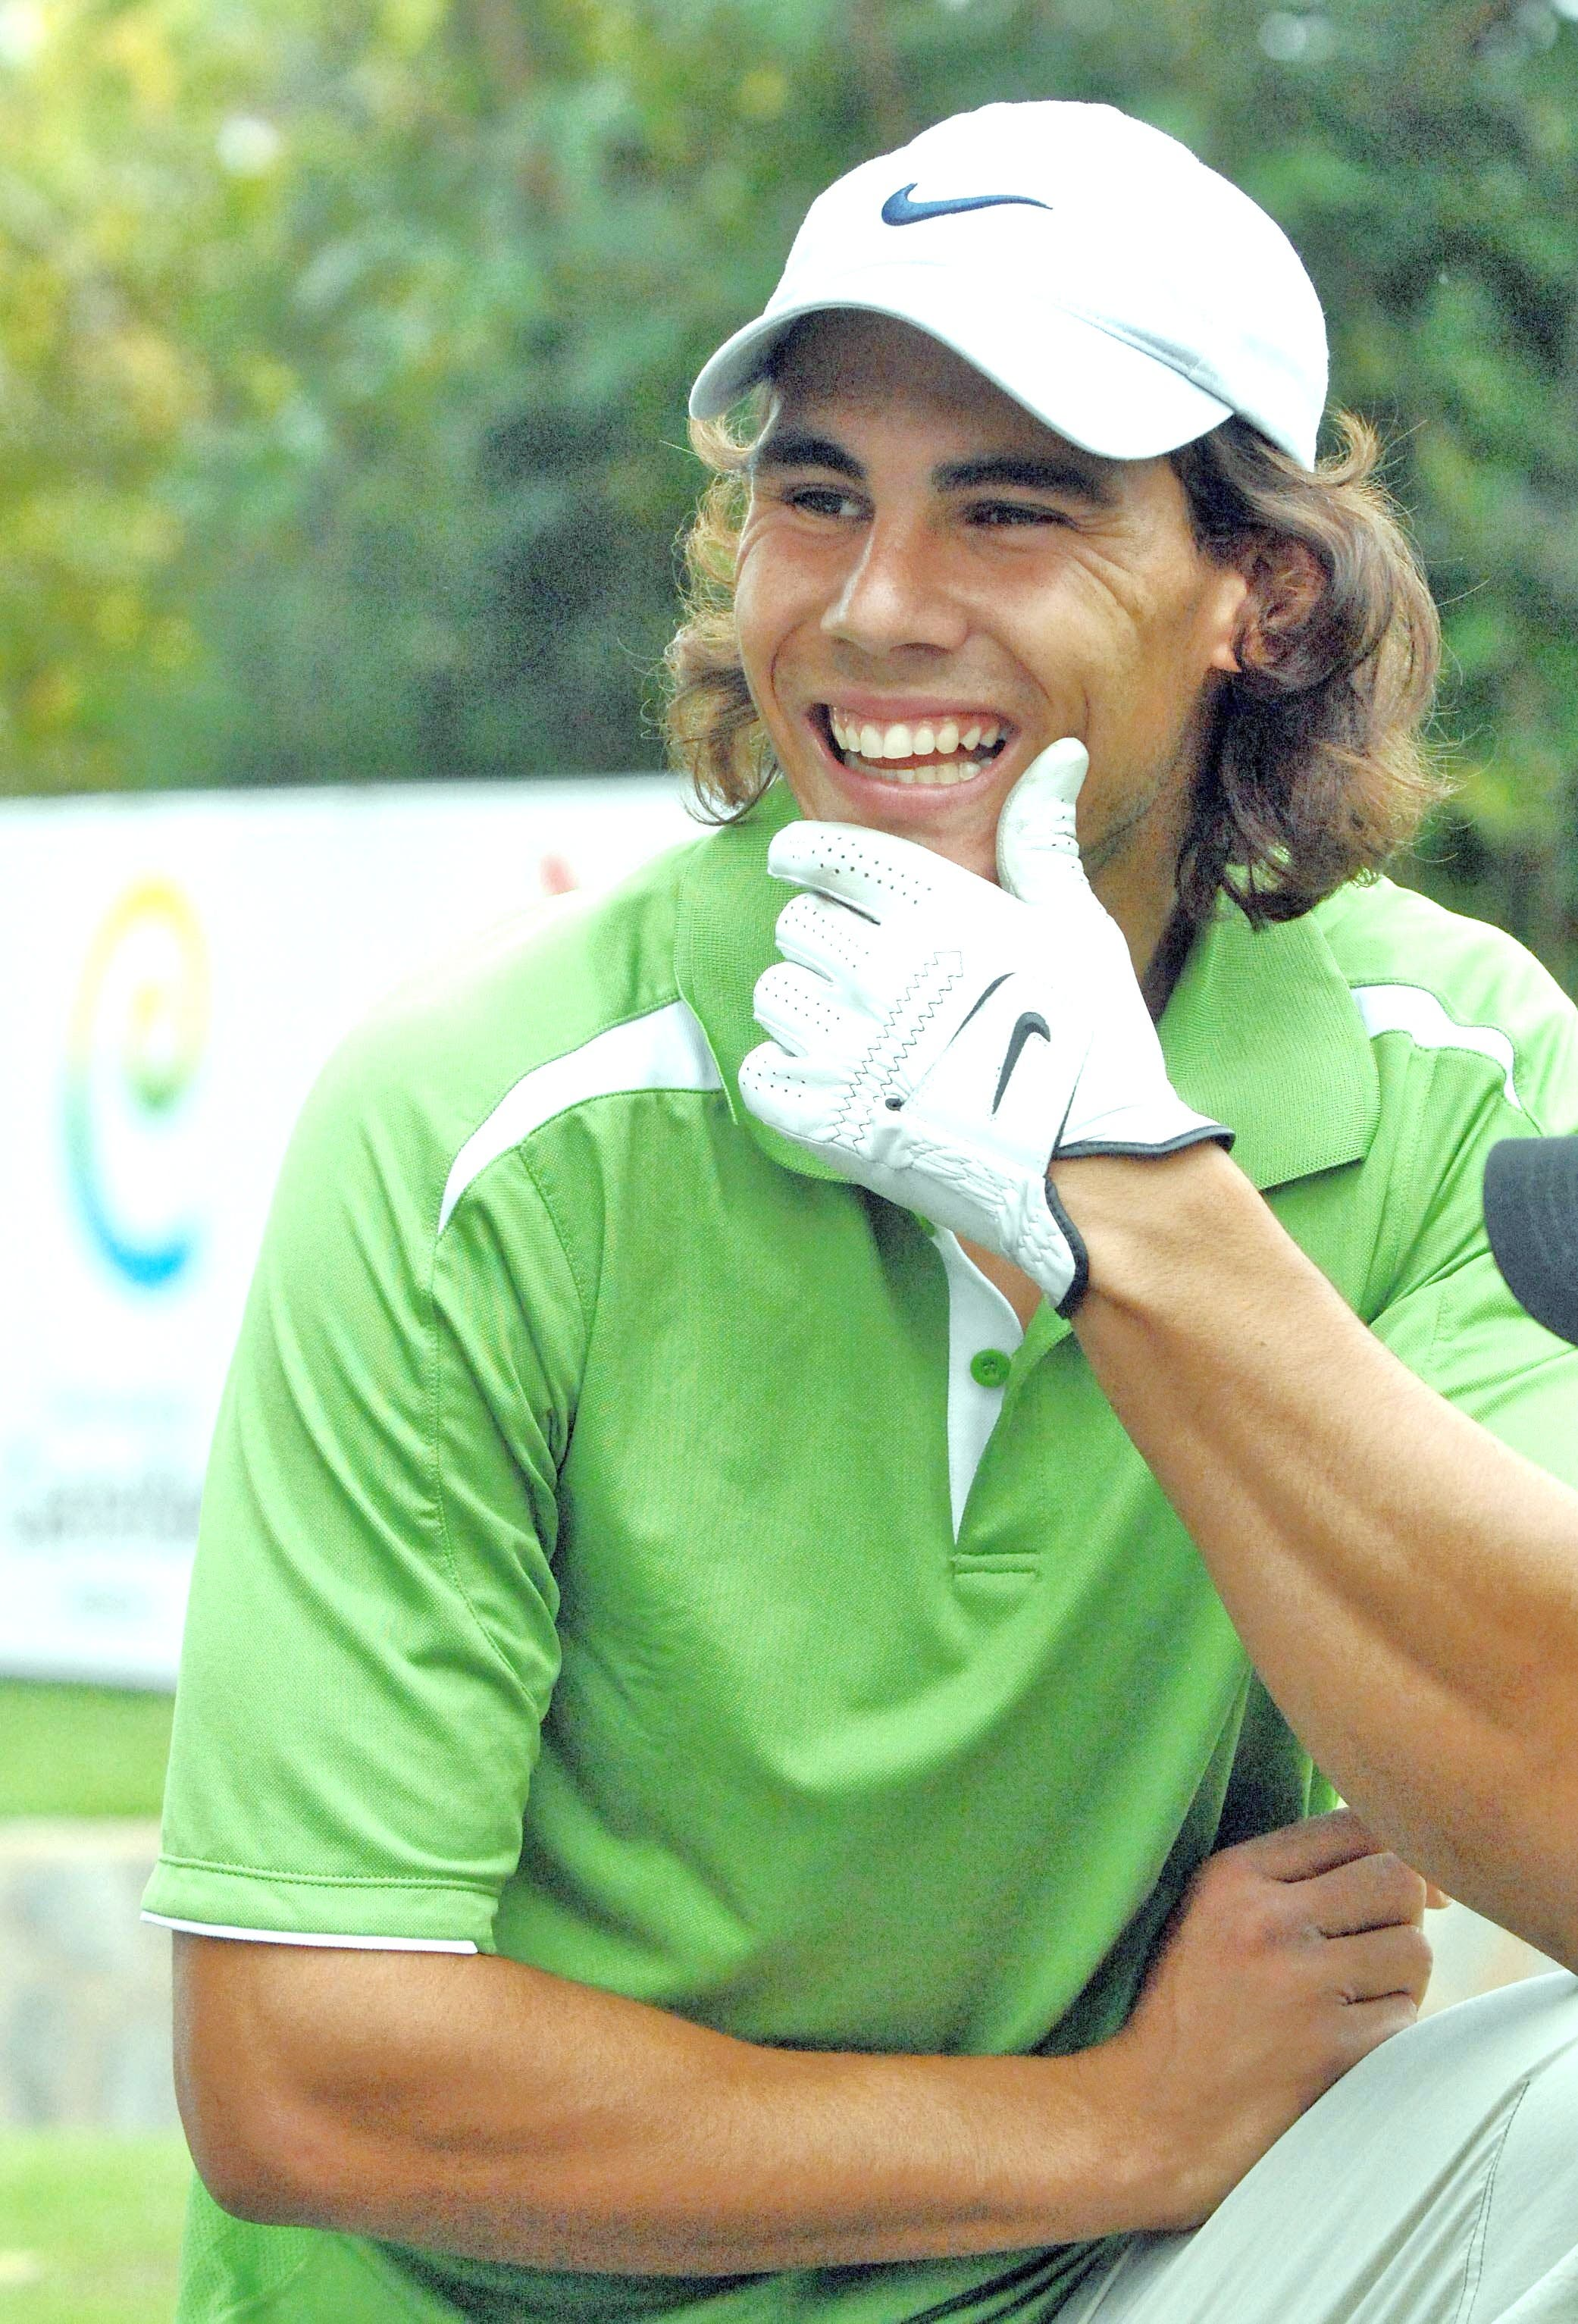 Rafa Nadal plays pranks on golfers in Mallorca